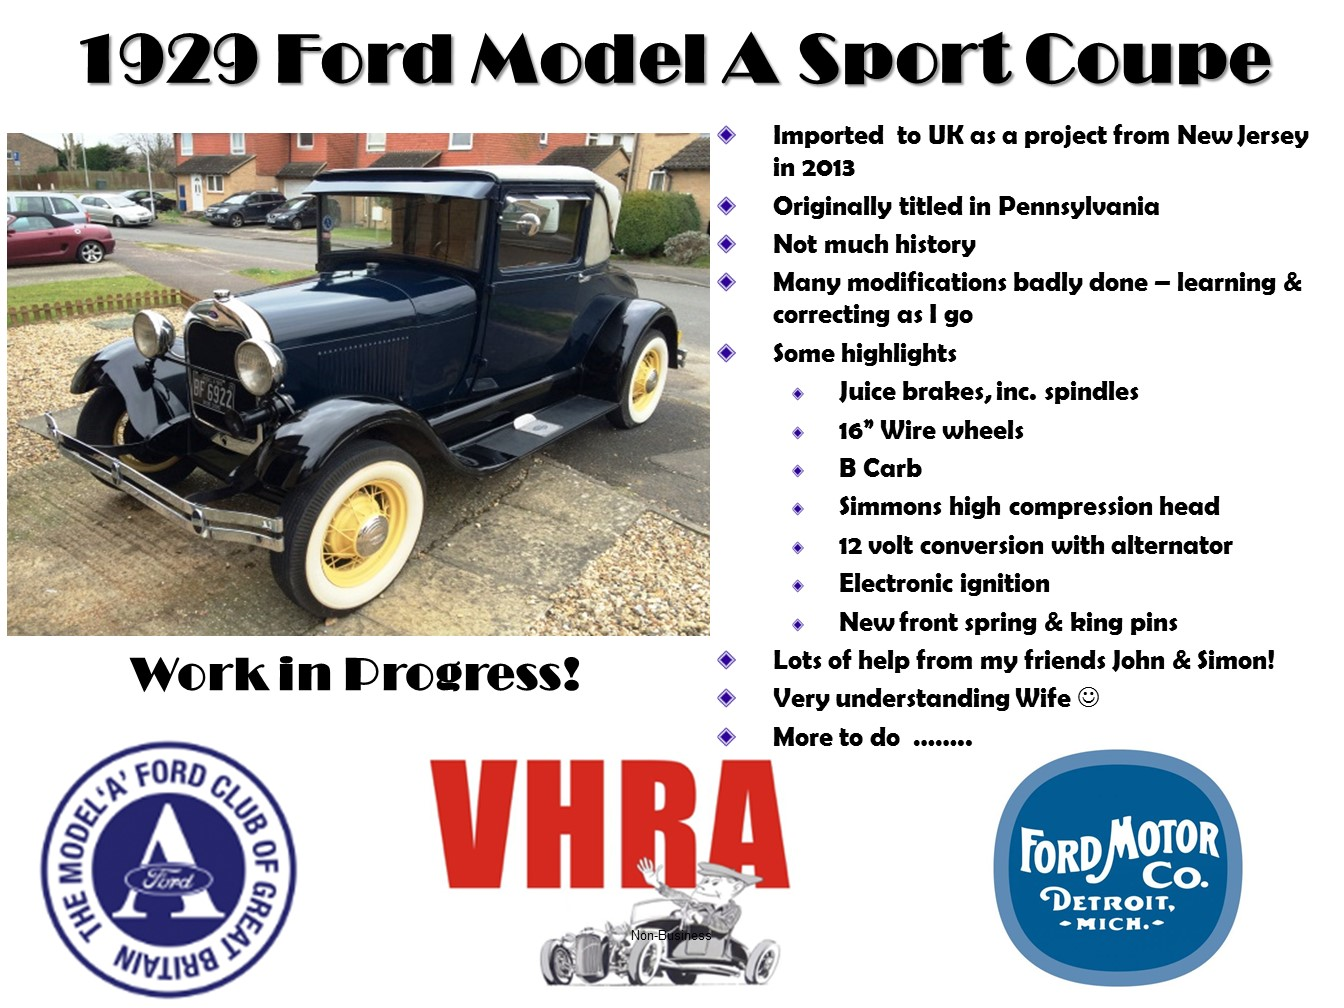 1929 Model A Sport Coupe at Wheels Day 2016